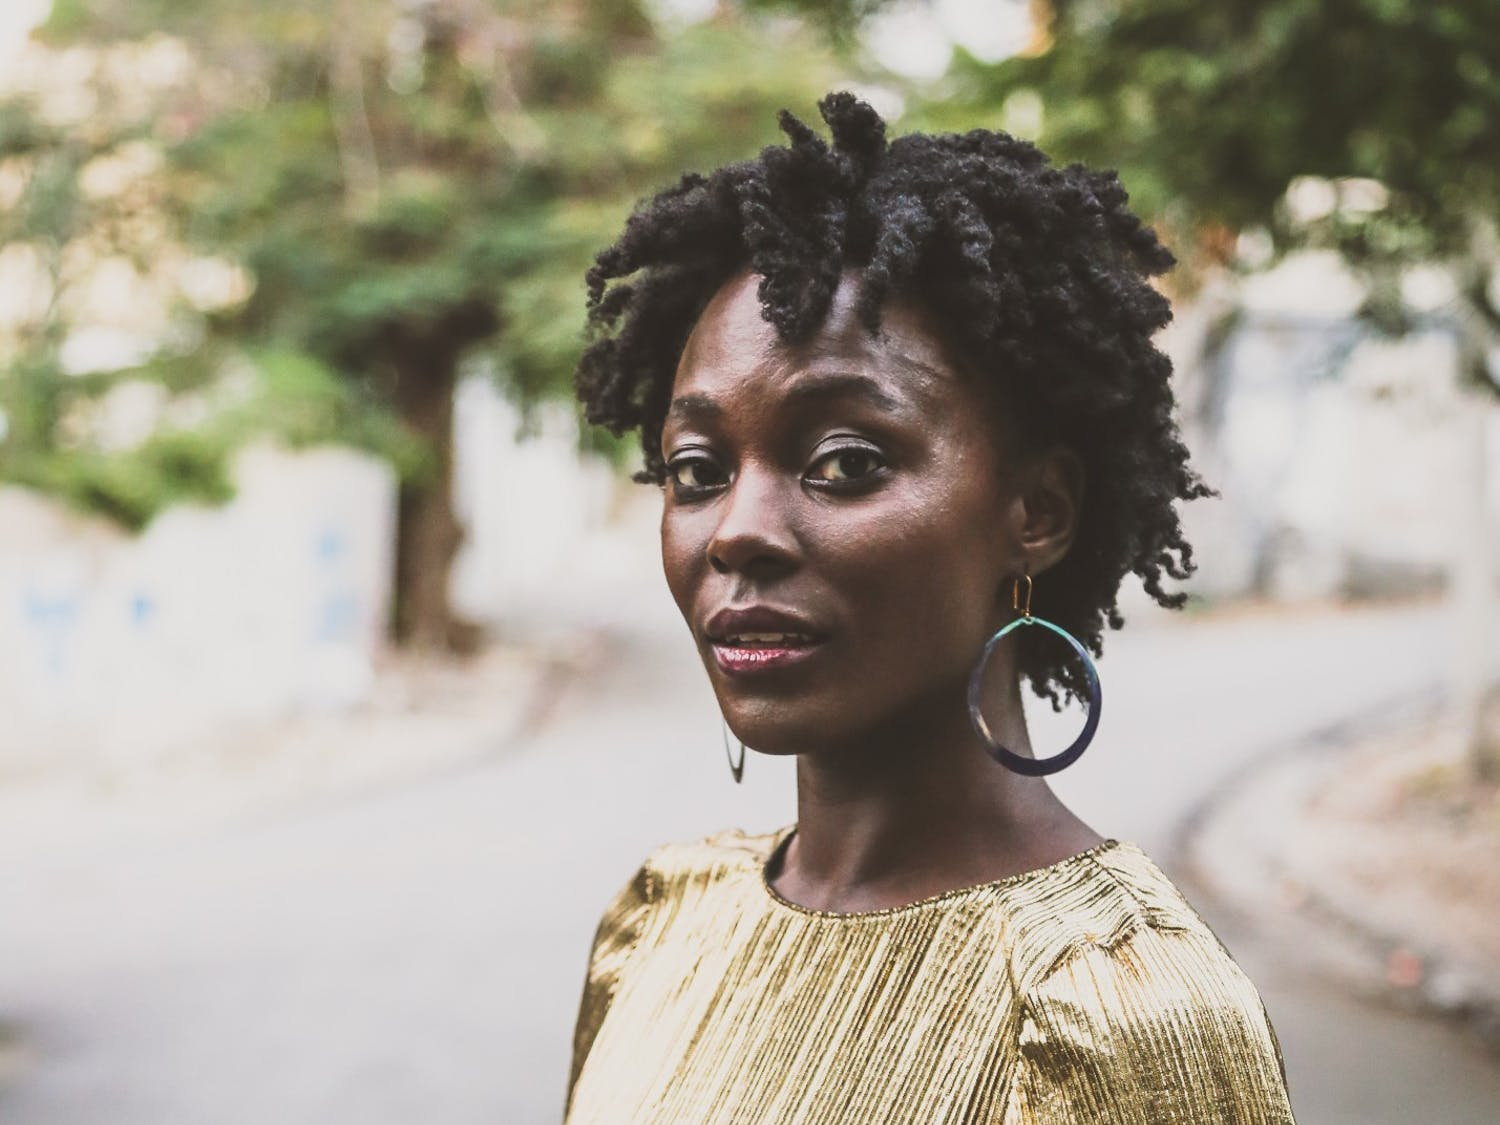 """Nathalie Joachim will perform her newest album """"Famn d'Ayiti"""" on Friday, Jan. 10, 2020 at the James and Susan Moeser Auditorium in Hill Hall. The album conveys the heritage of female Haitian musicians. Photo courtesy of Josué Azor."""